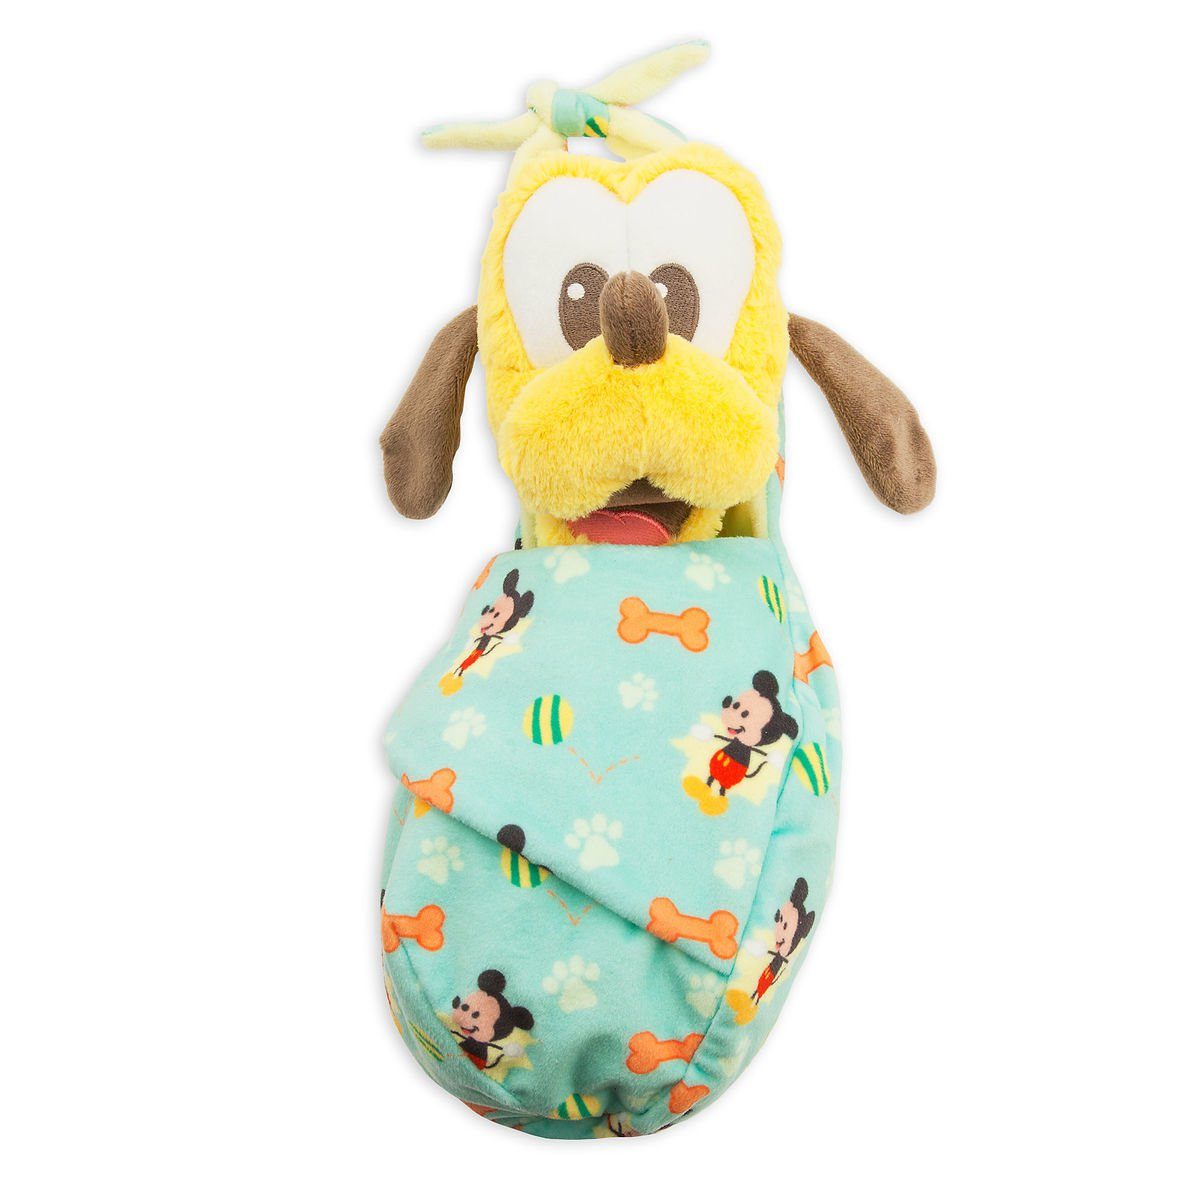 Disney Parks Pluto Plush with Blanket Pouch - Disney's Babies - Small